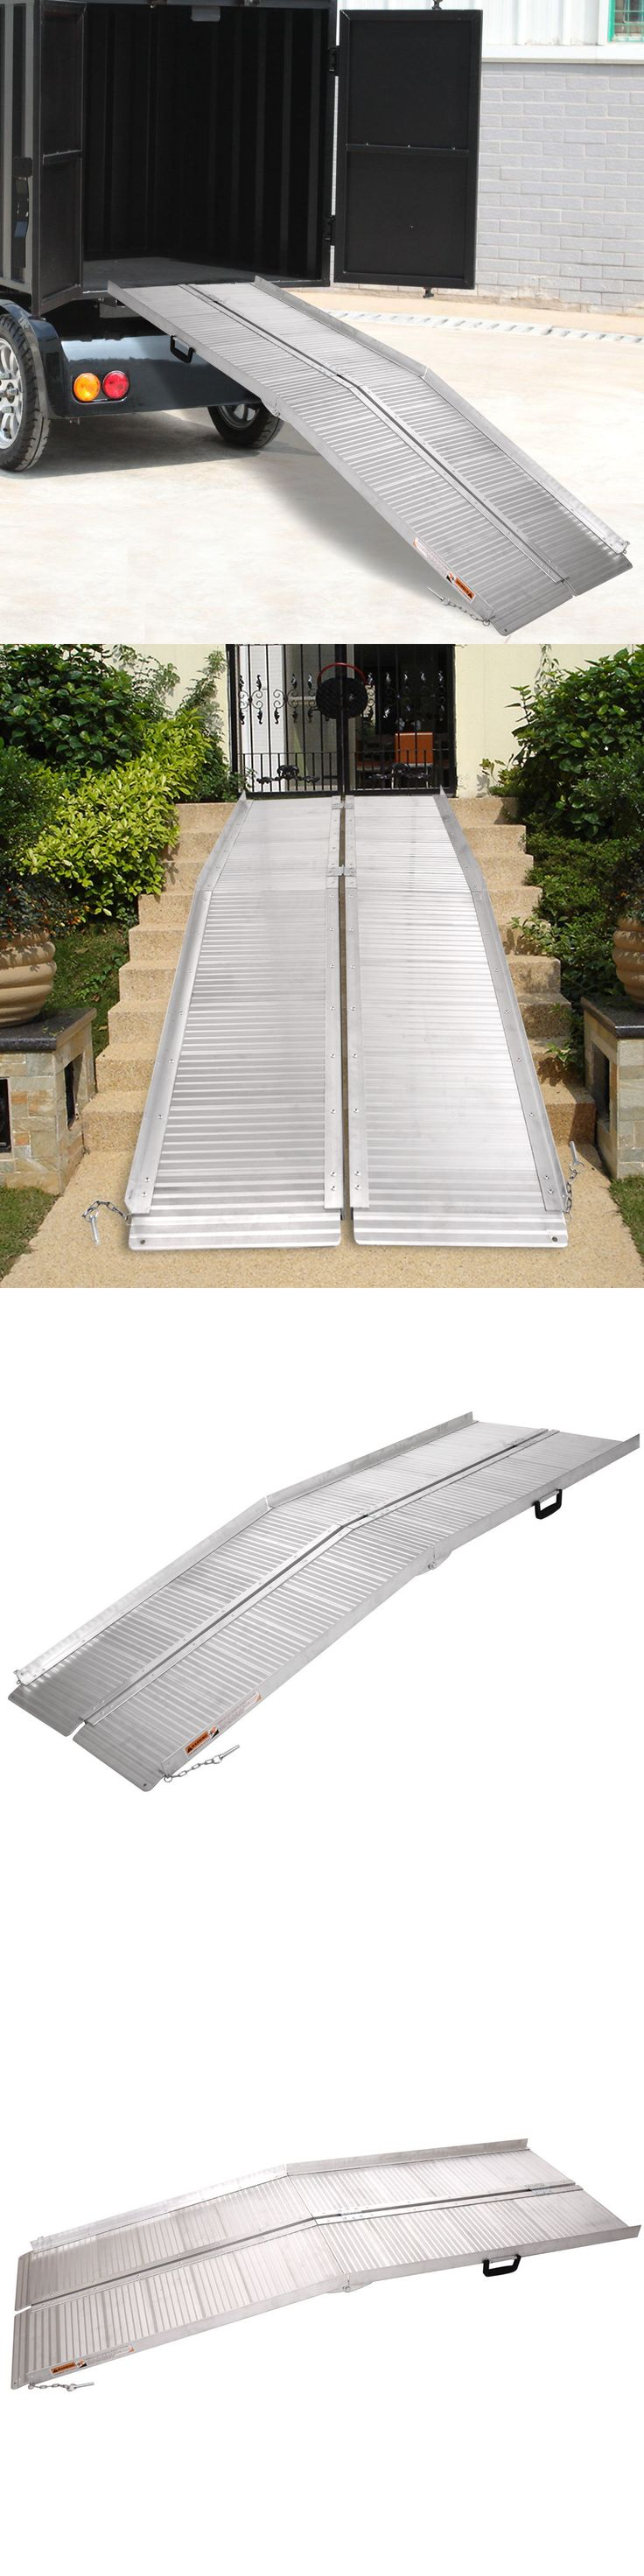 Access Ramps: 10 Aluminum Wheelchair Ramp Fold Portable Mobility Handicap Suitcase Threshold BUY IT NOW ONLY: $229.9